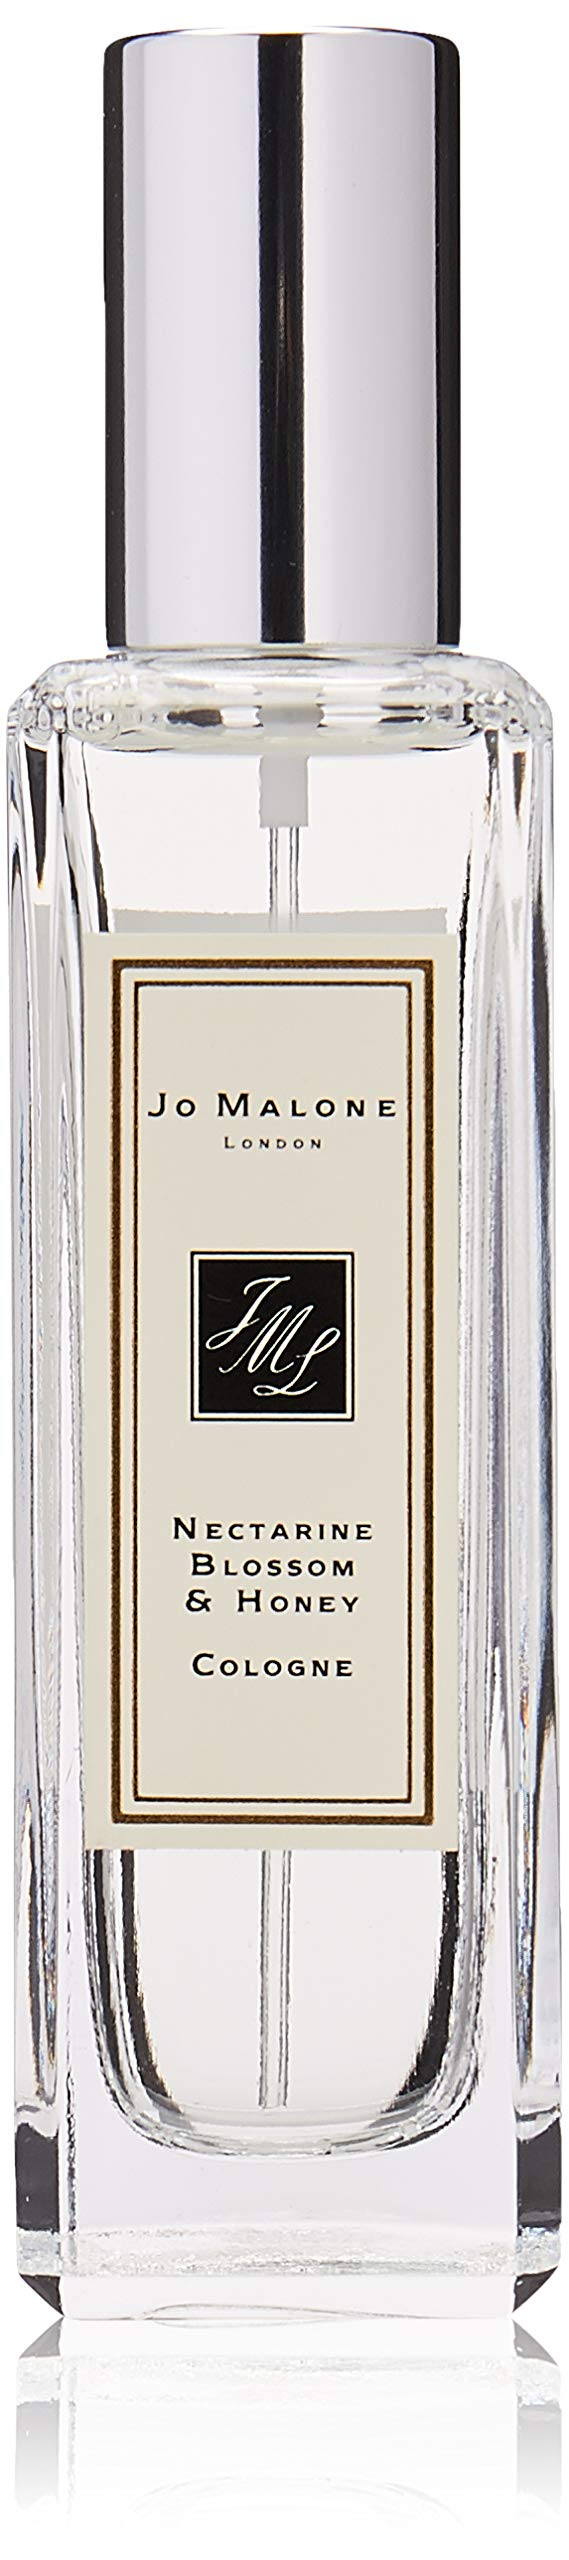 Jo Malone Nectarine Blossom and Honey-Cologne, 1 Ounce